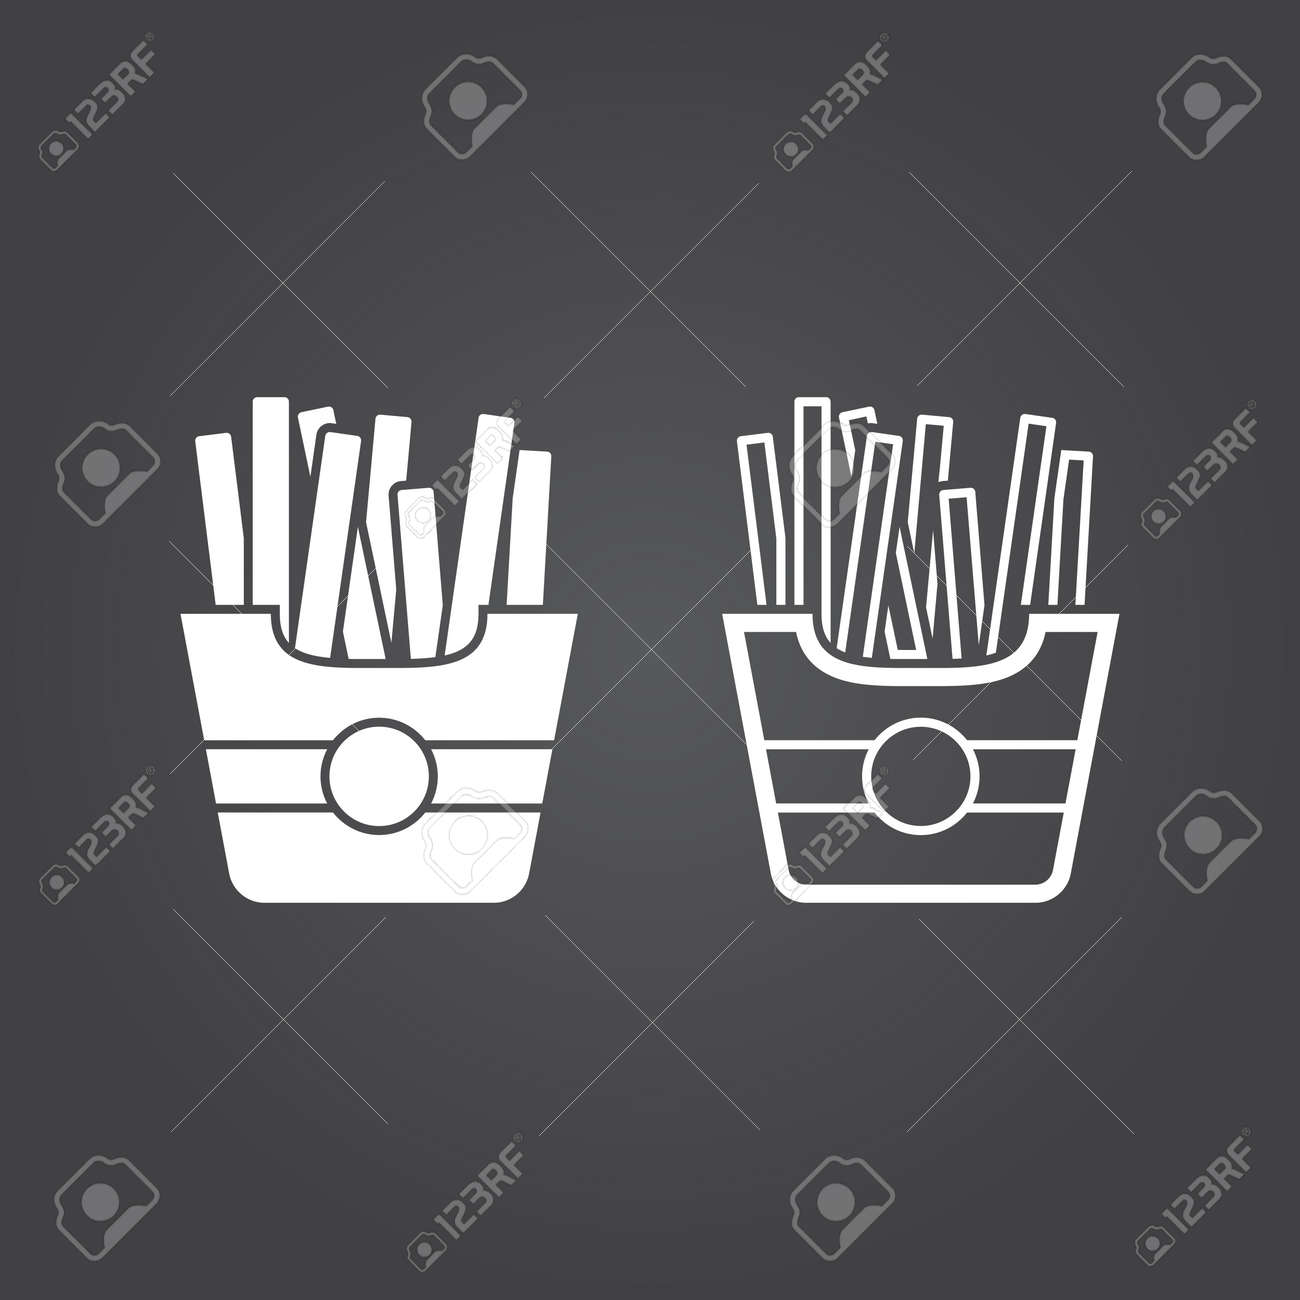 french fries icon  Solid and Outline Versions  White icons on